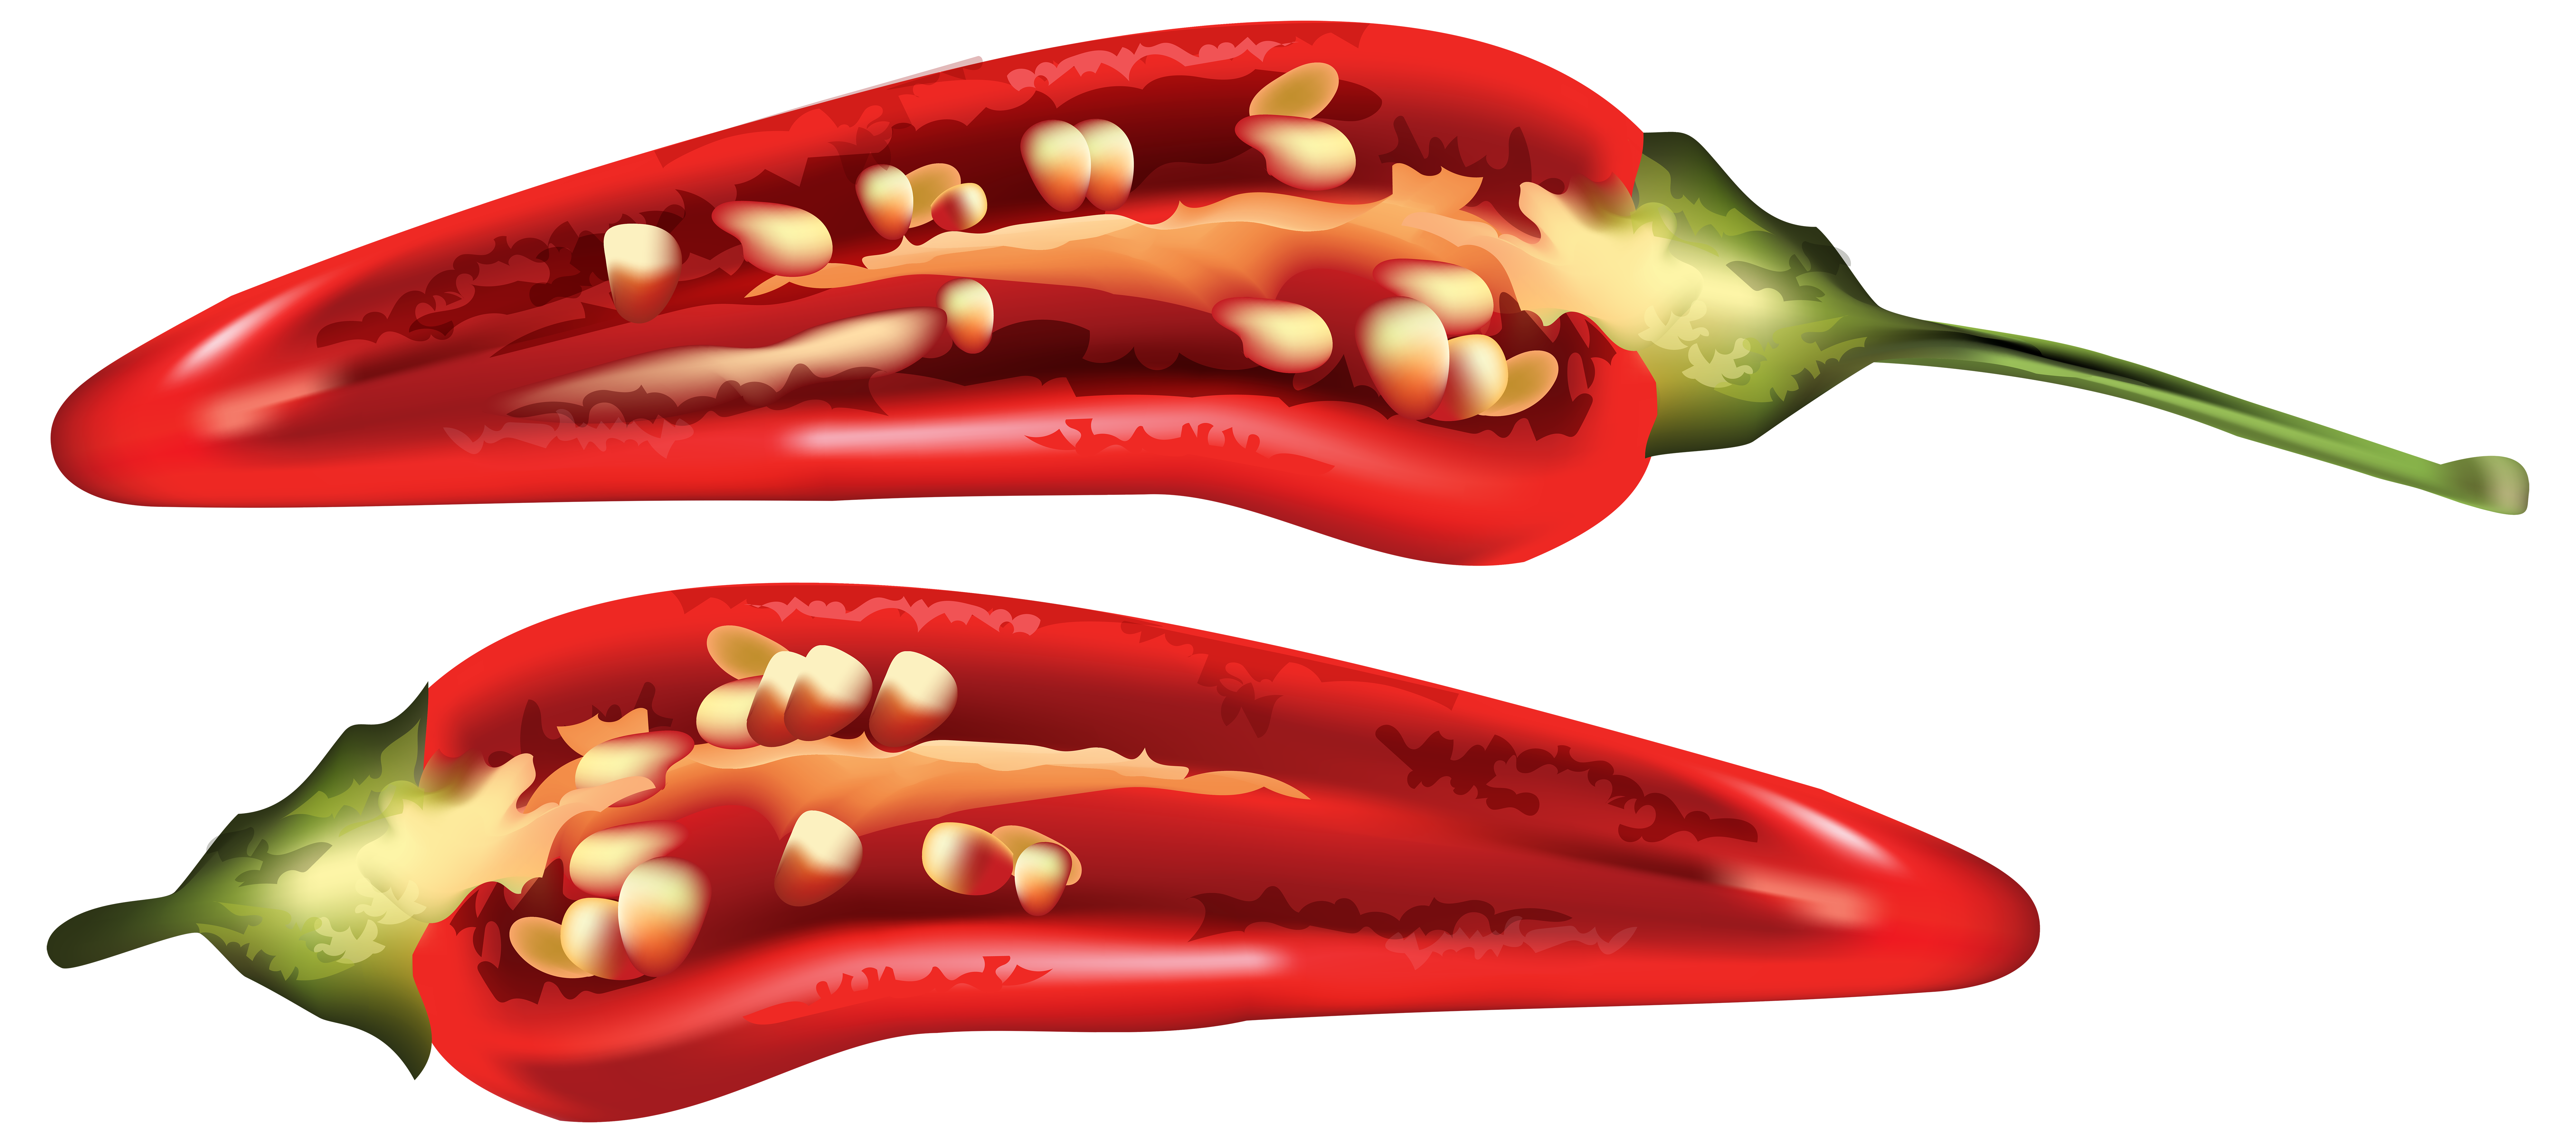 Red Chili Drawing